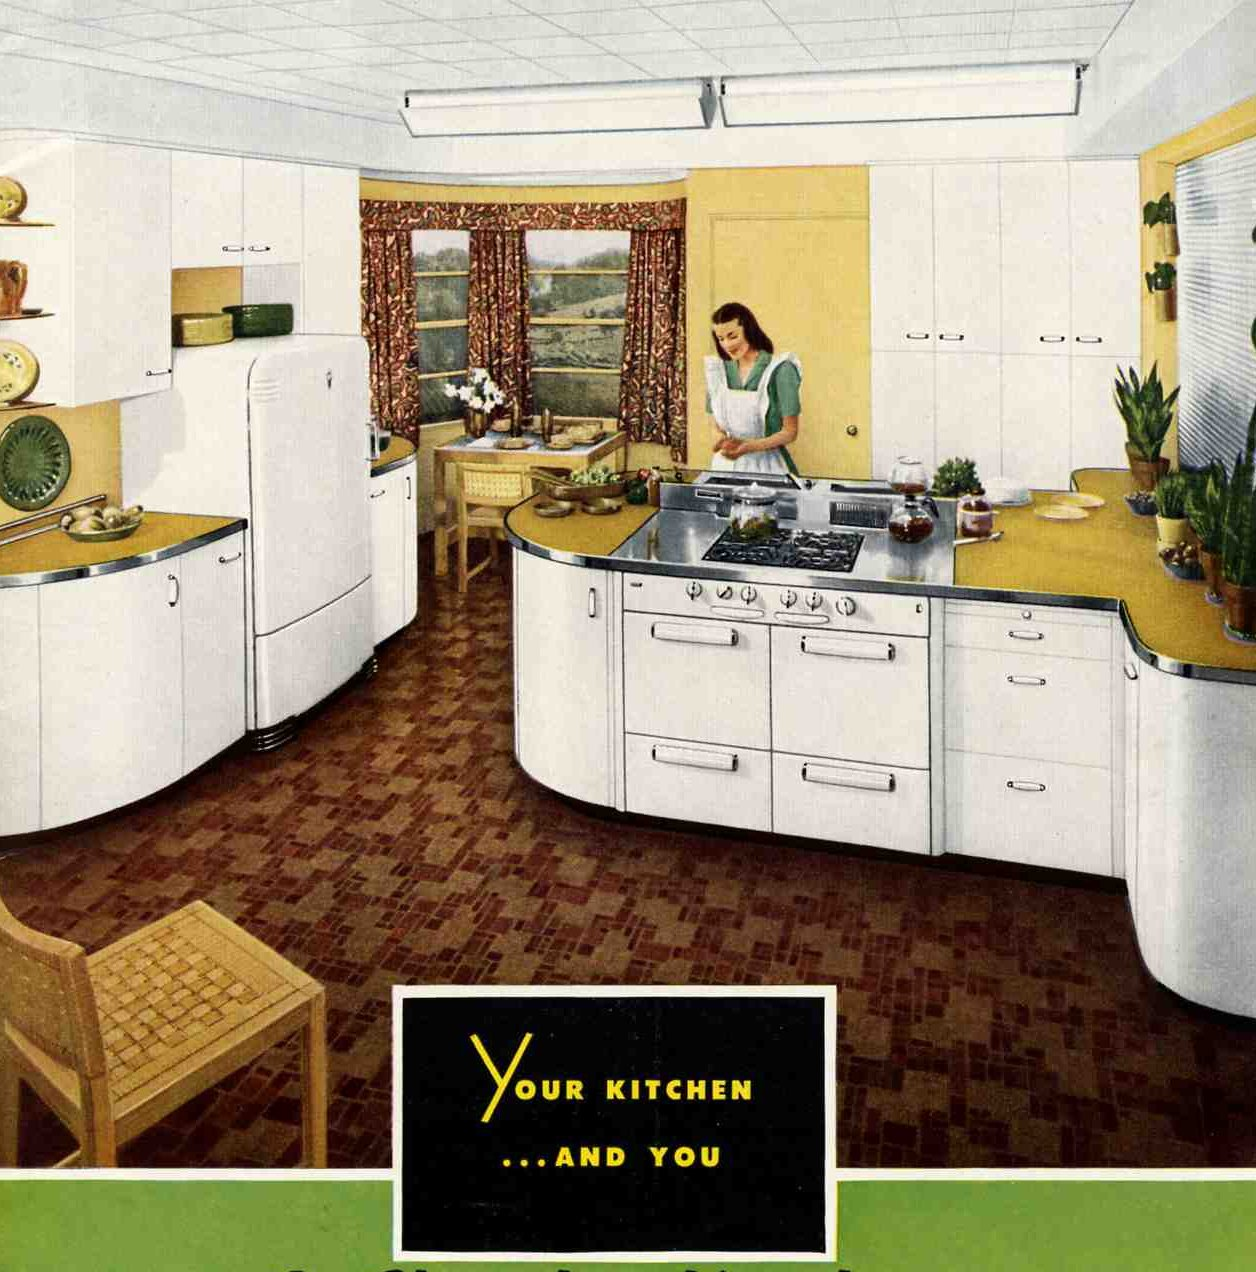 1948 Was A Very Good Year: Awesome Retro Kitchens And Cary